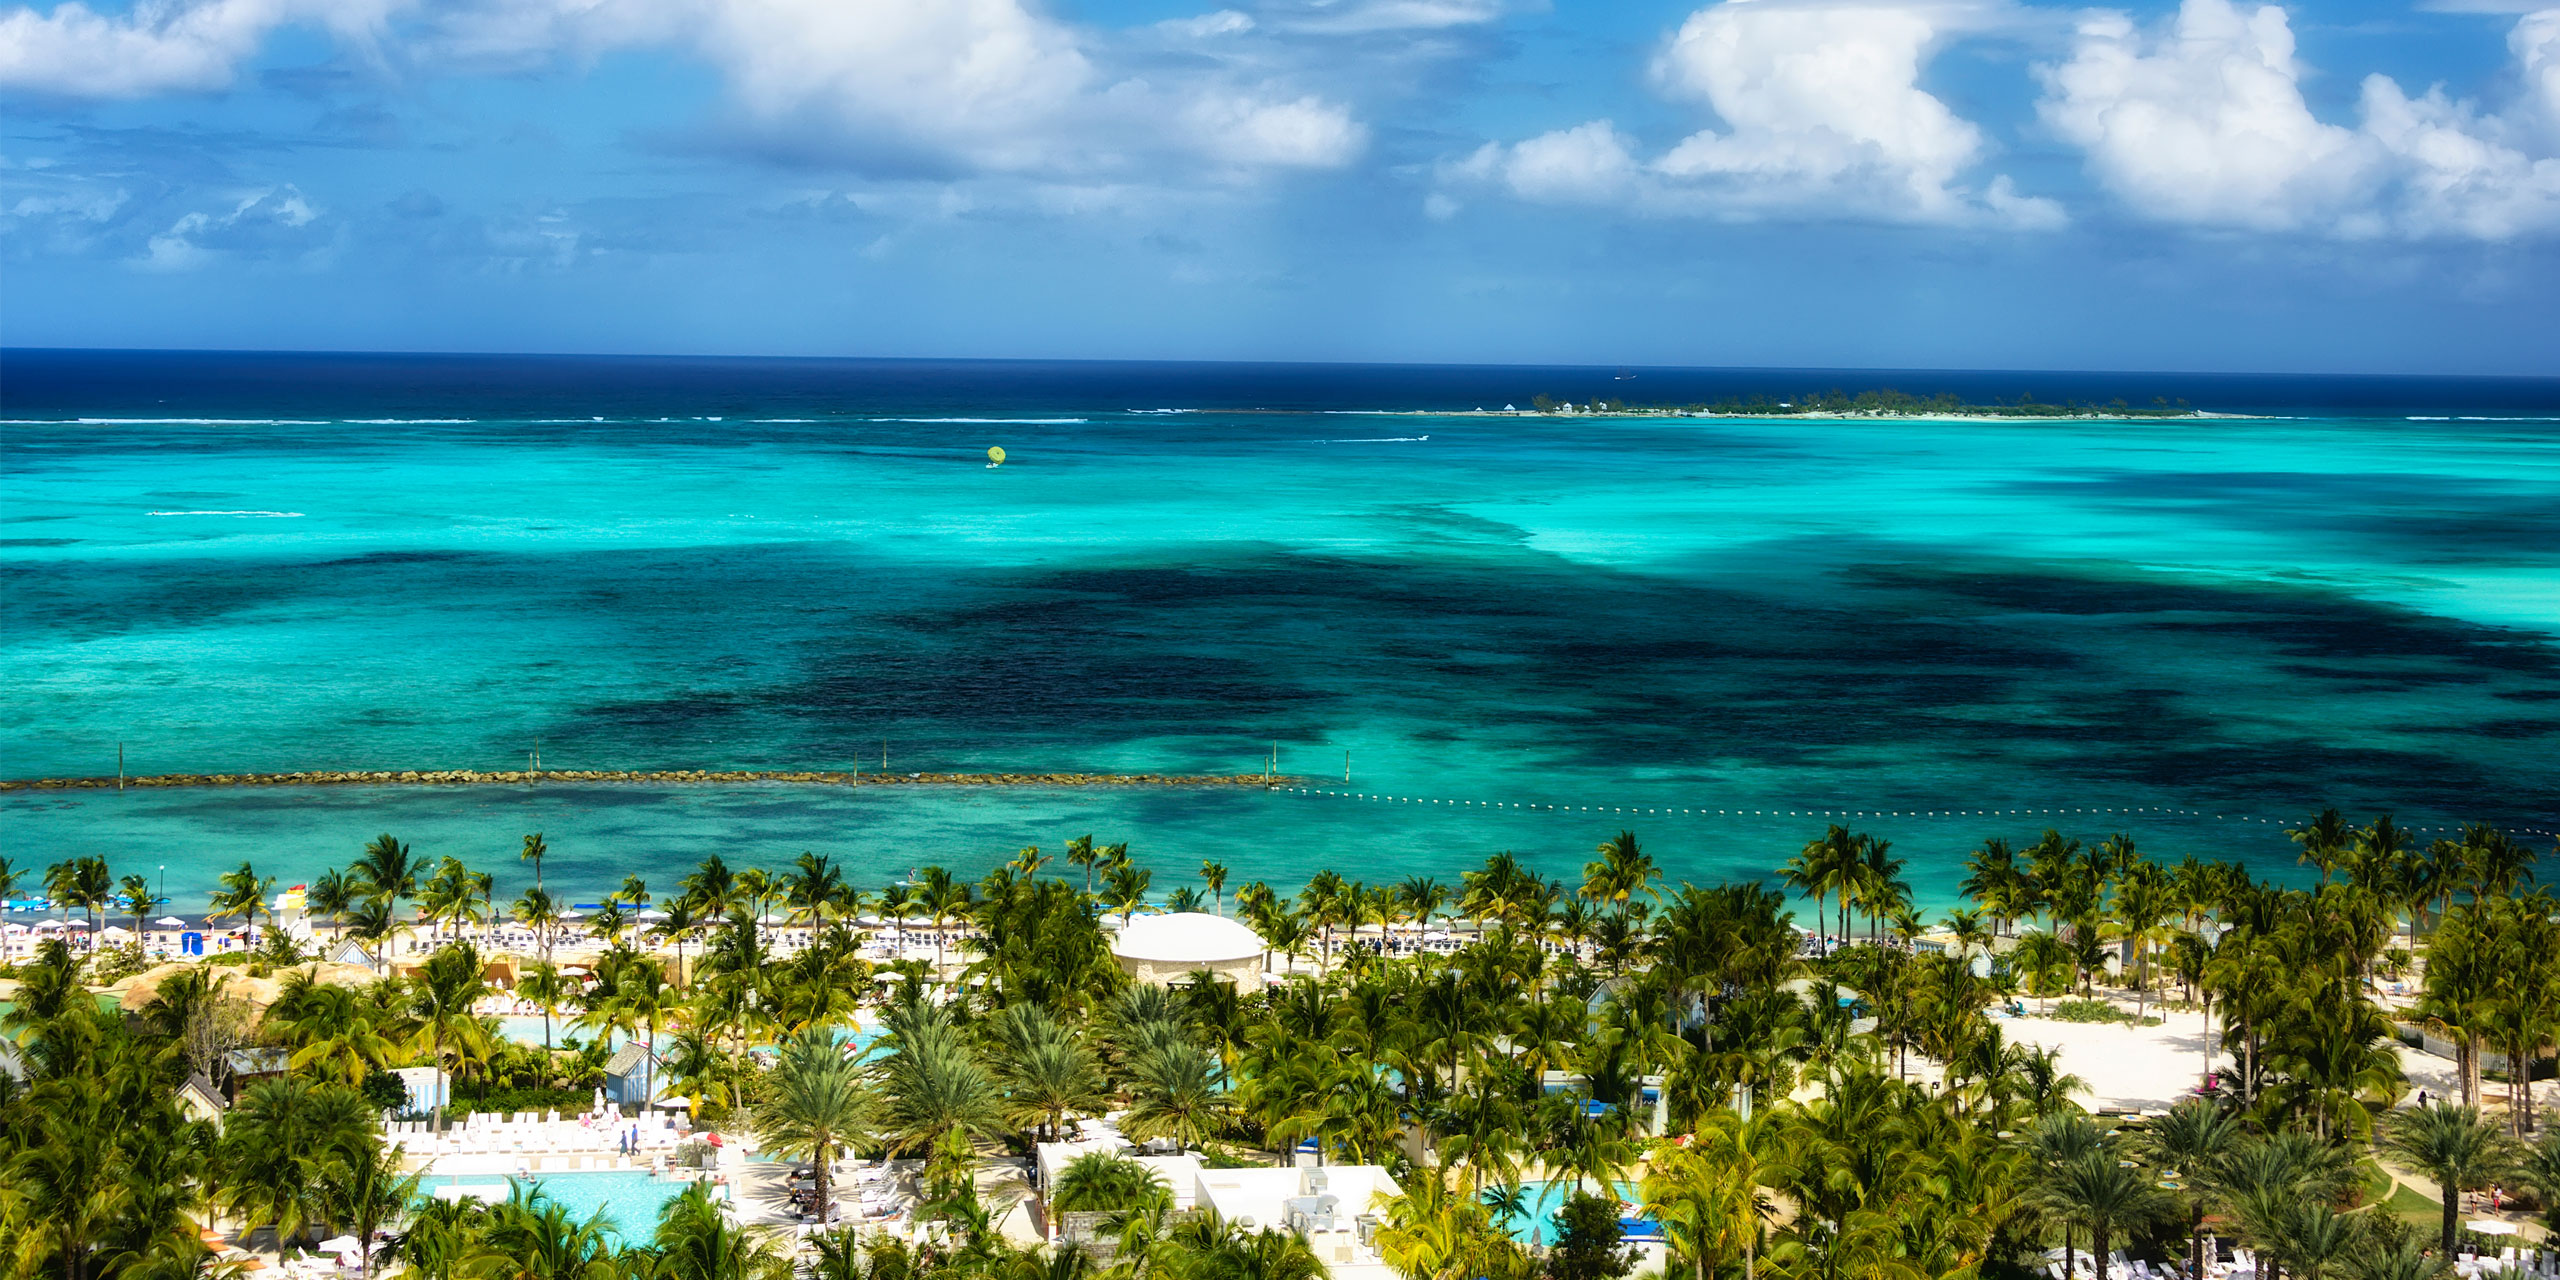 Nassau Bahamas; Courtesy of Ruth Peterkin/Shutterstock.com